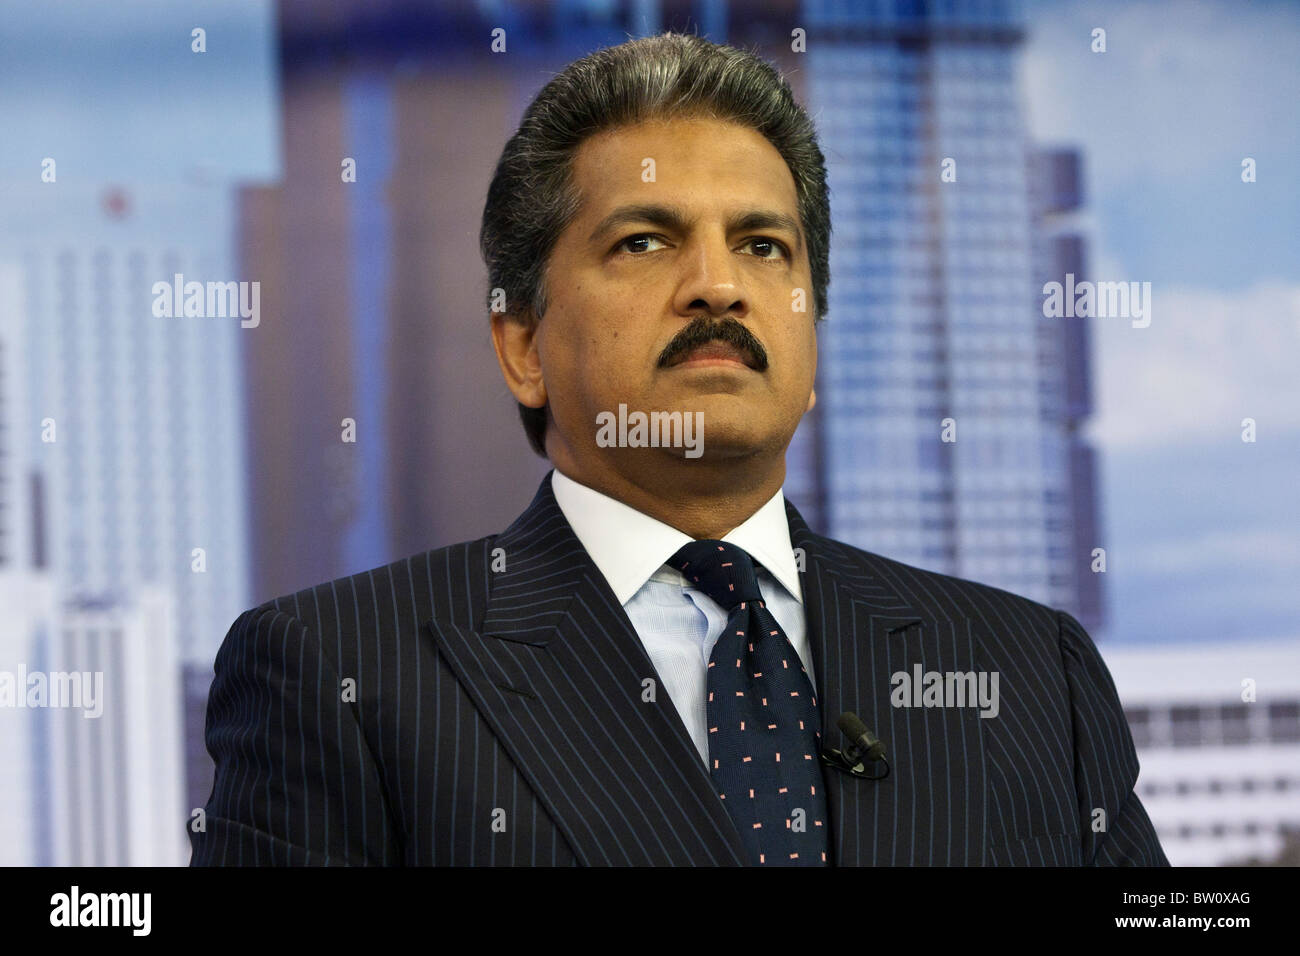 Anand Mahindra, vice chairman and managing director of Mahindra & Mahindra Ltd., speaks during an interview - Stock Image